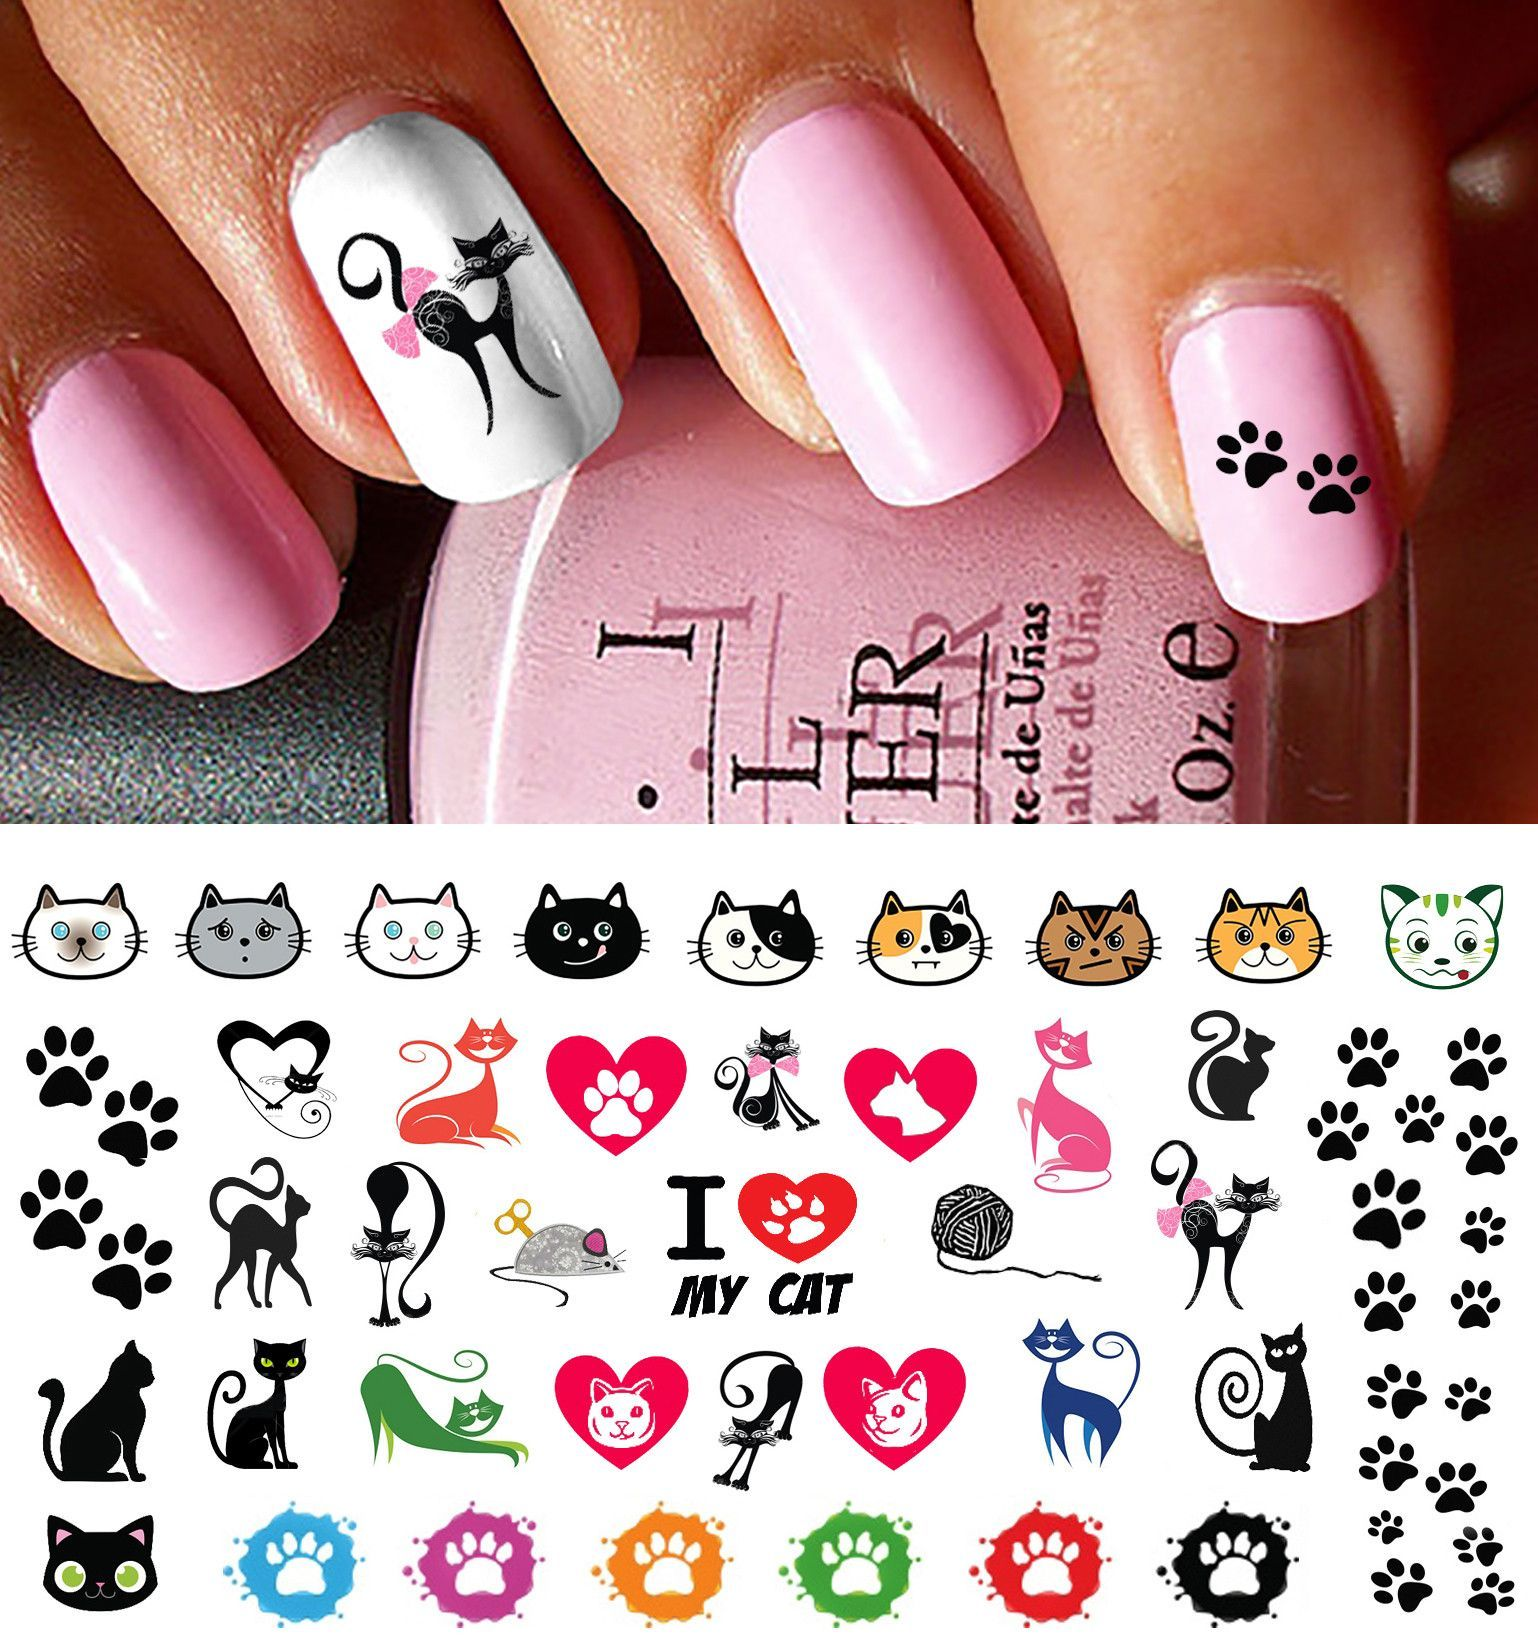 I Love My Cat Paw Prints Nail Decals - I Love My Cat Paw Prints Nail Decals Paw Print Nails, Cat Paw